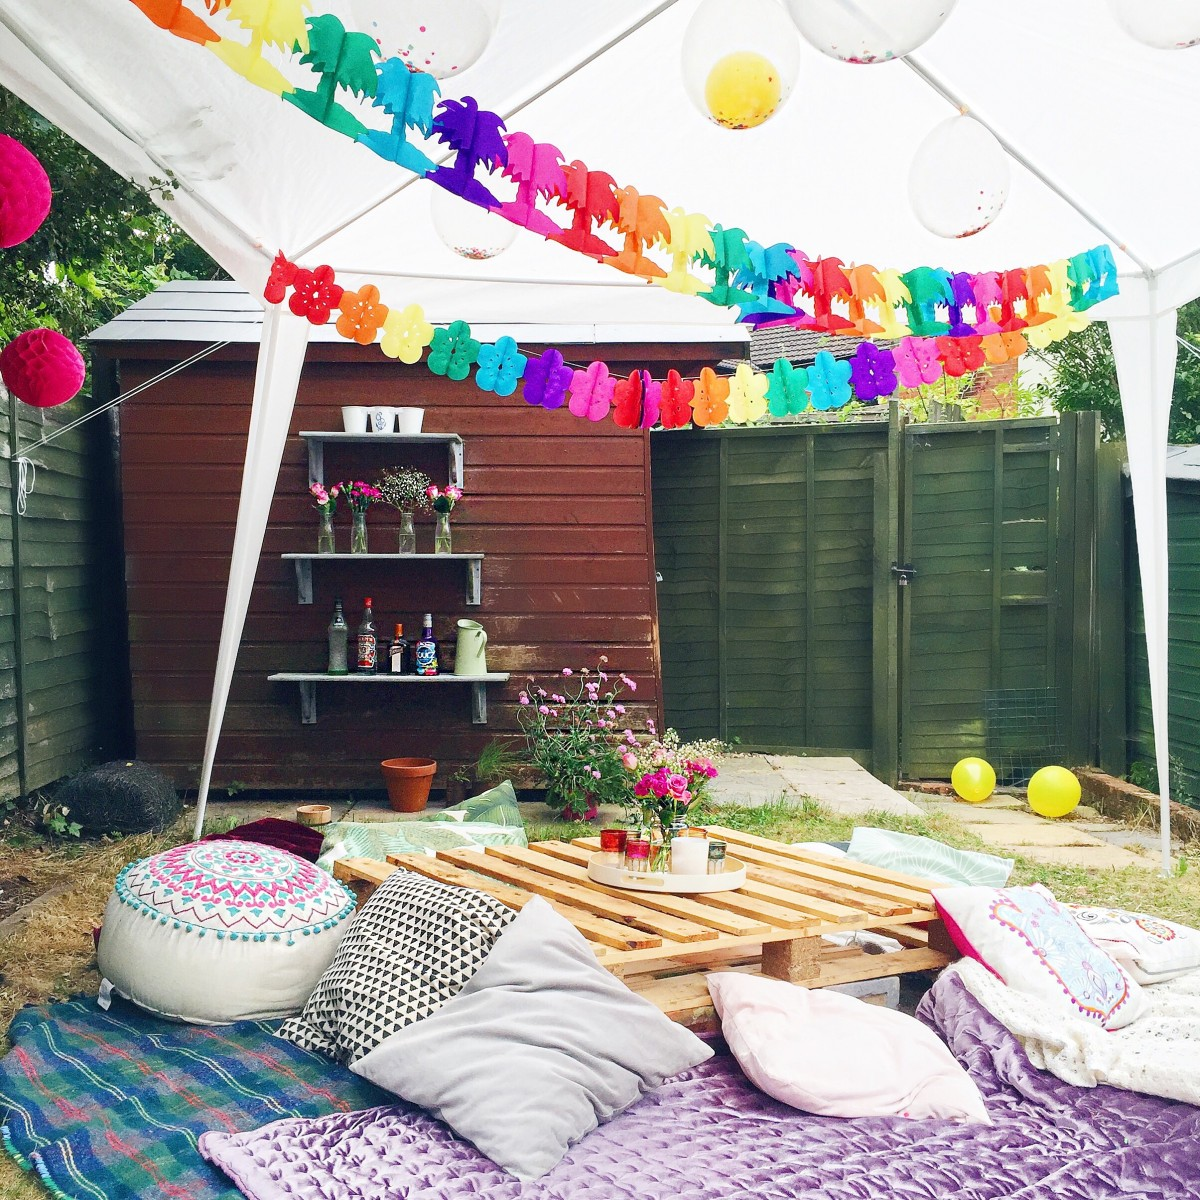 30 Small Backyard Landscaping Ideas On A Budget: Creating A Pinterest-Worthy Garden Party On A Budget